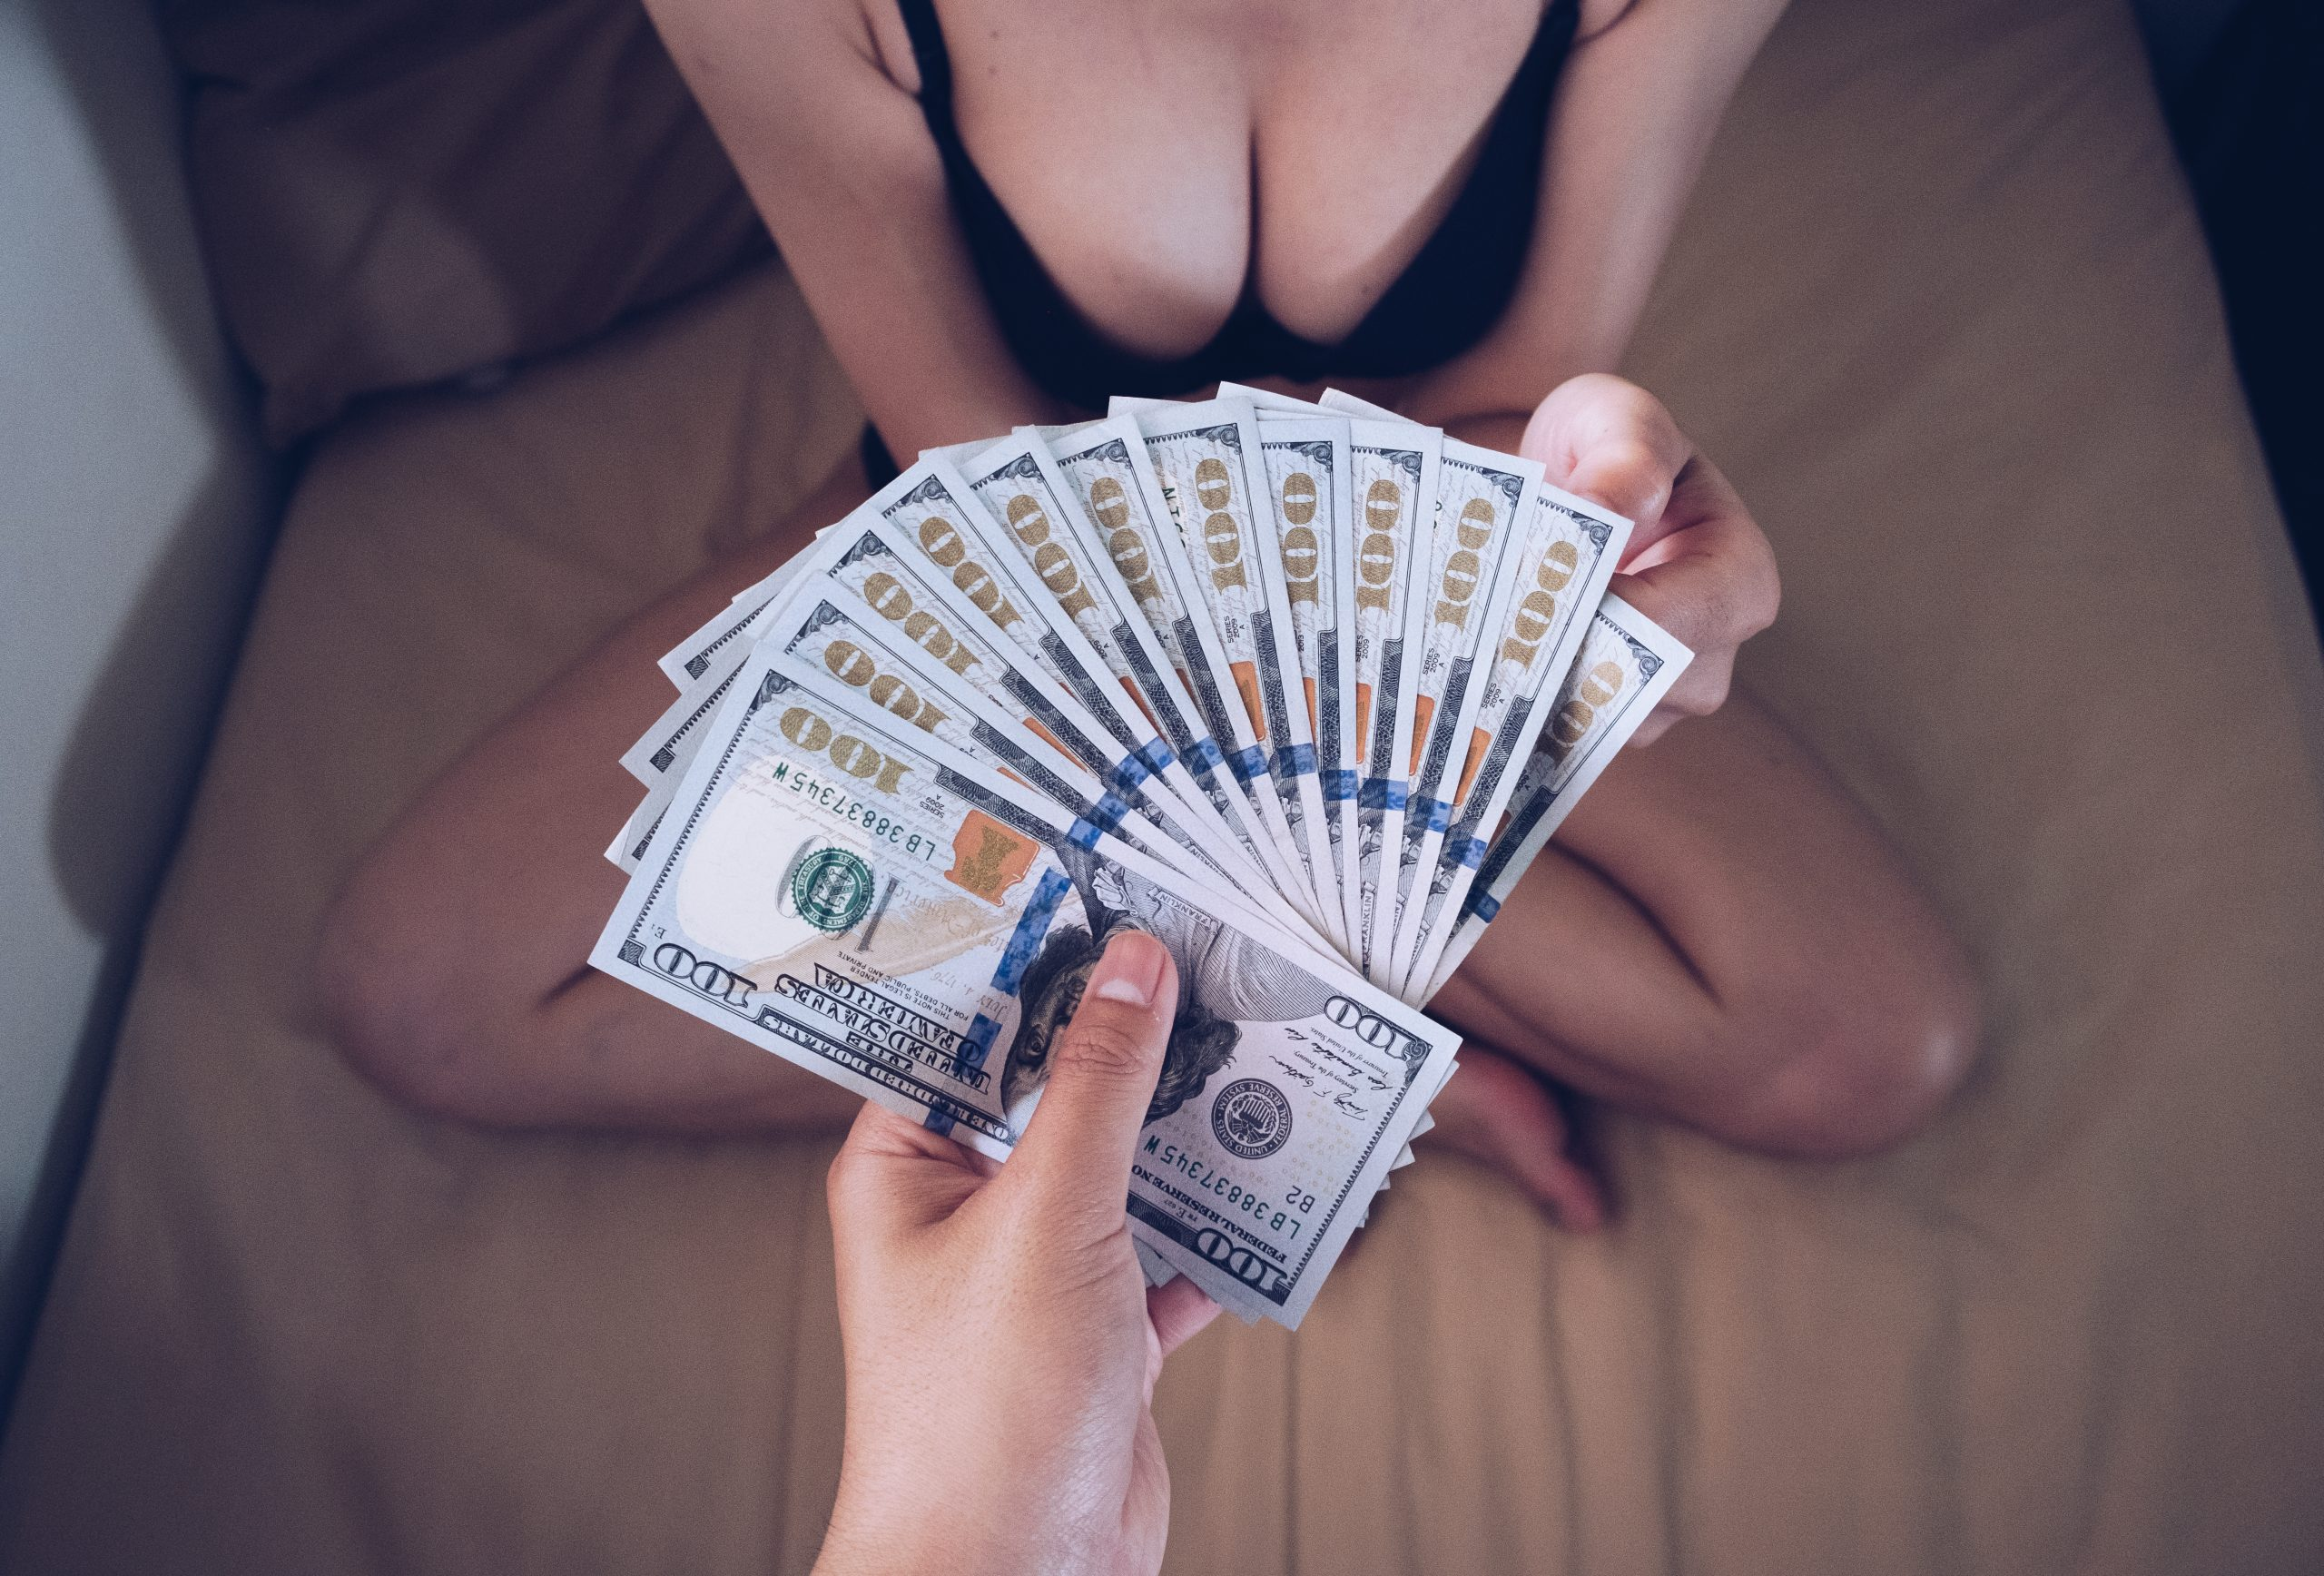 Pay Pig Phone Sex Financial Domination